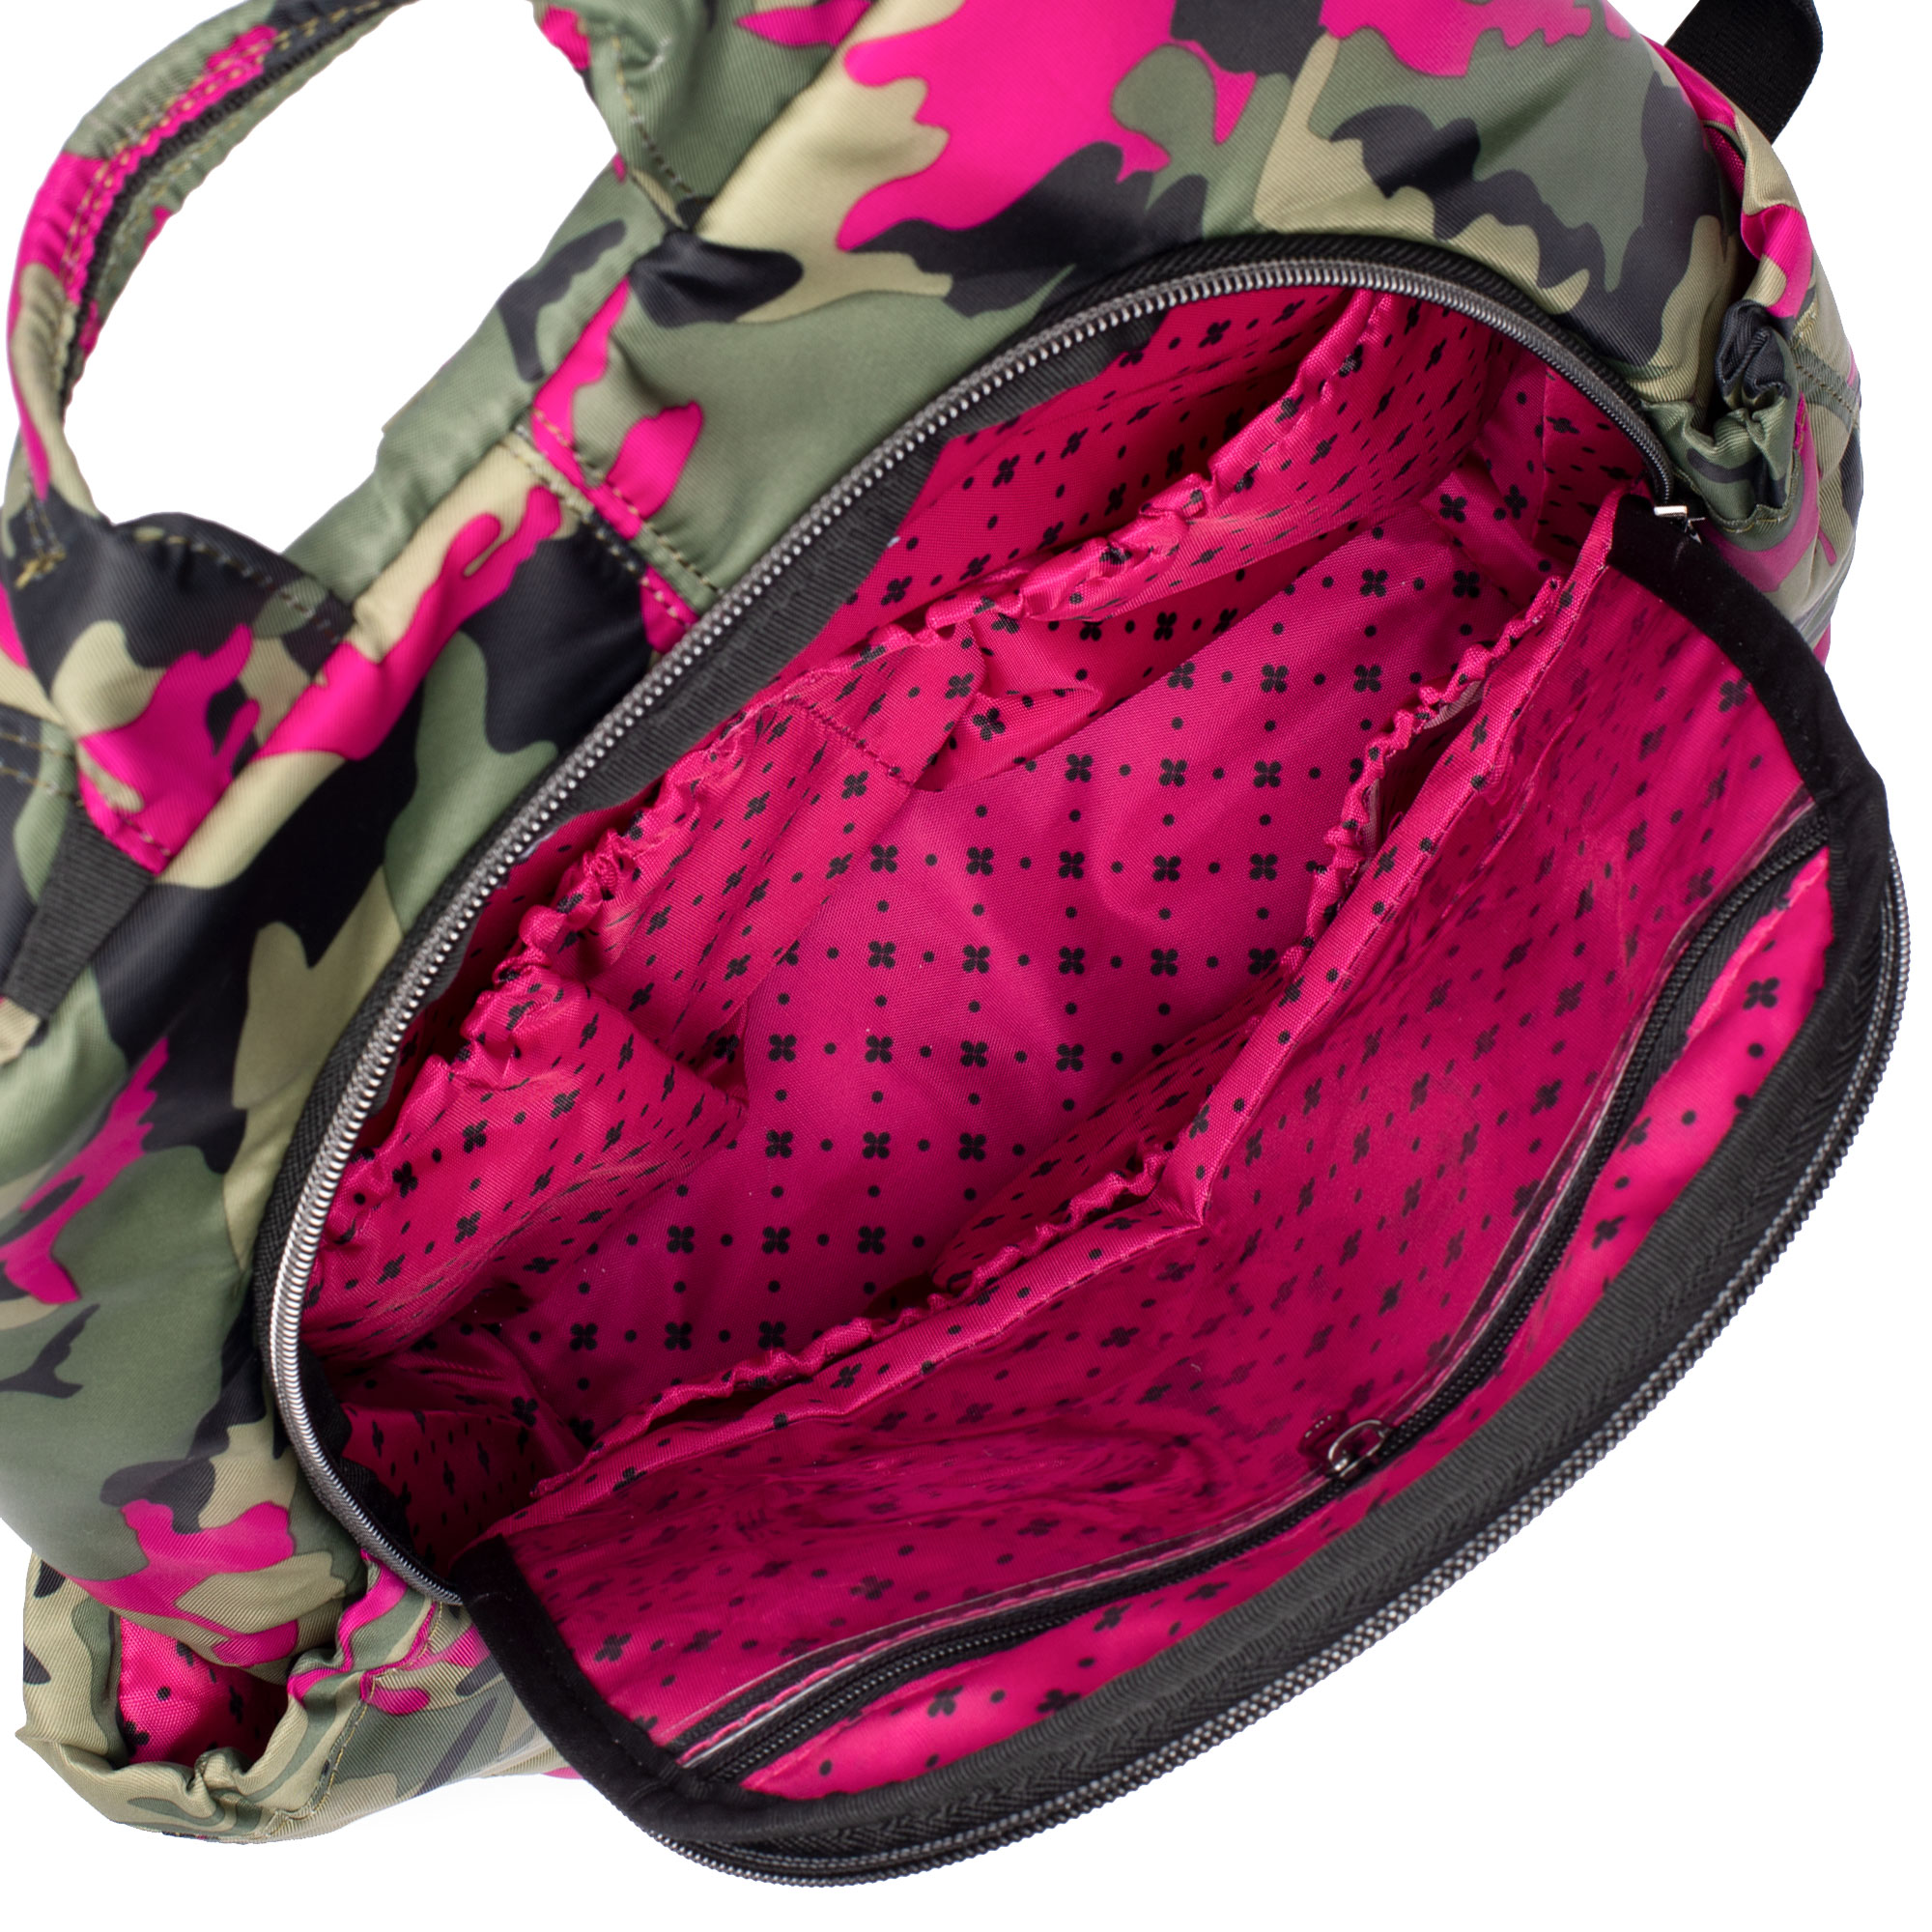 Camo Orchid Small Lug Hatchback Backpack 3